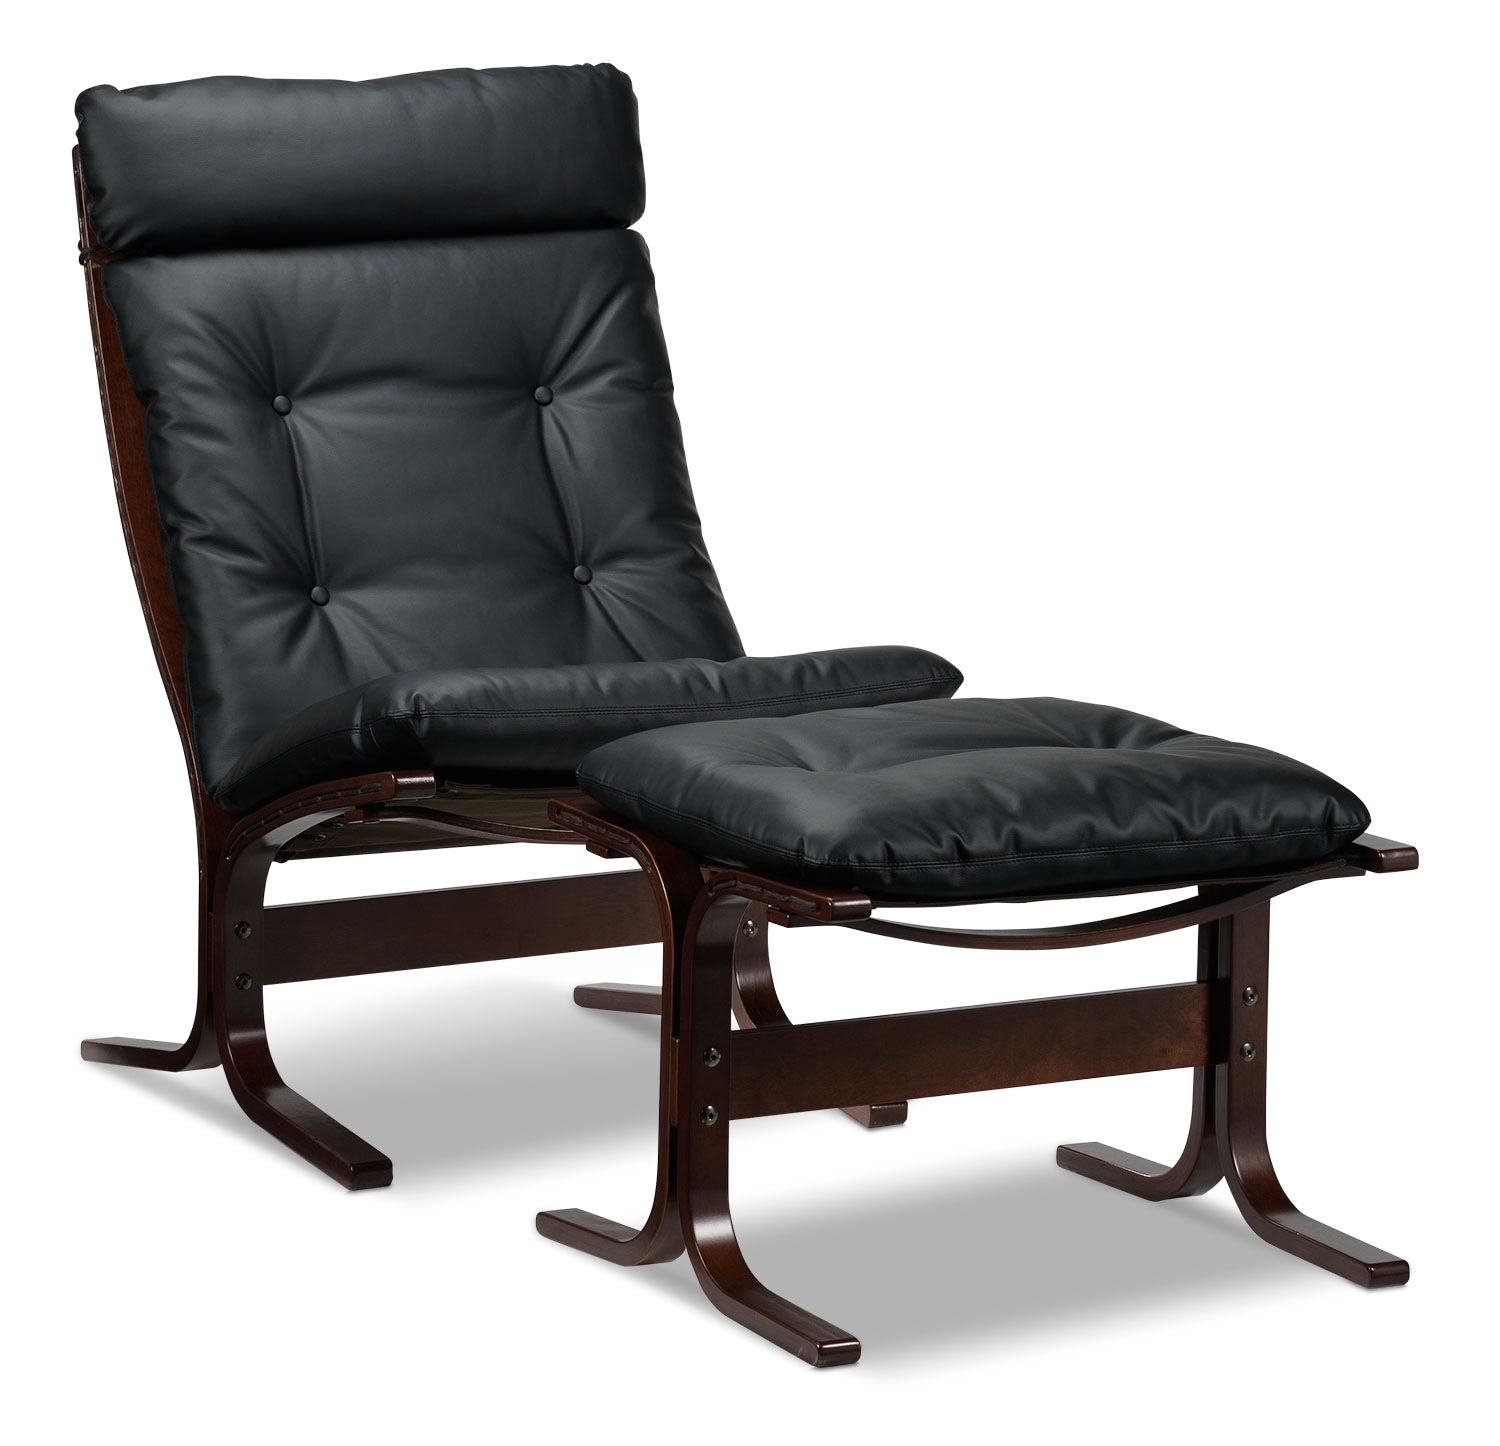 [Carey Chair and Ottoman - Black]